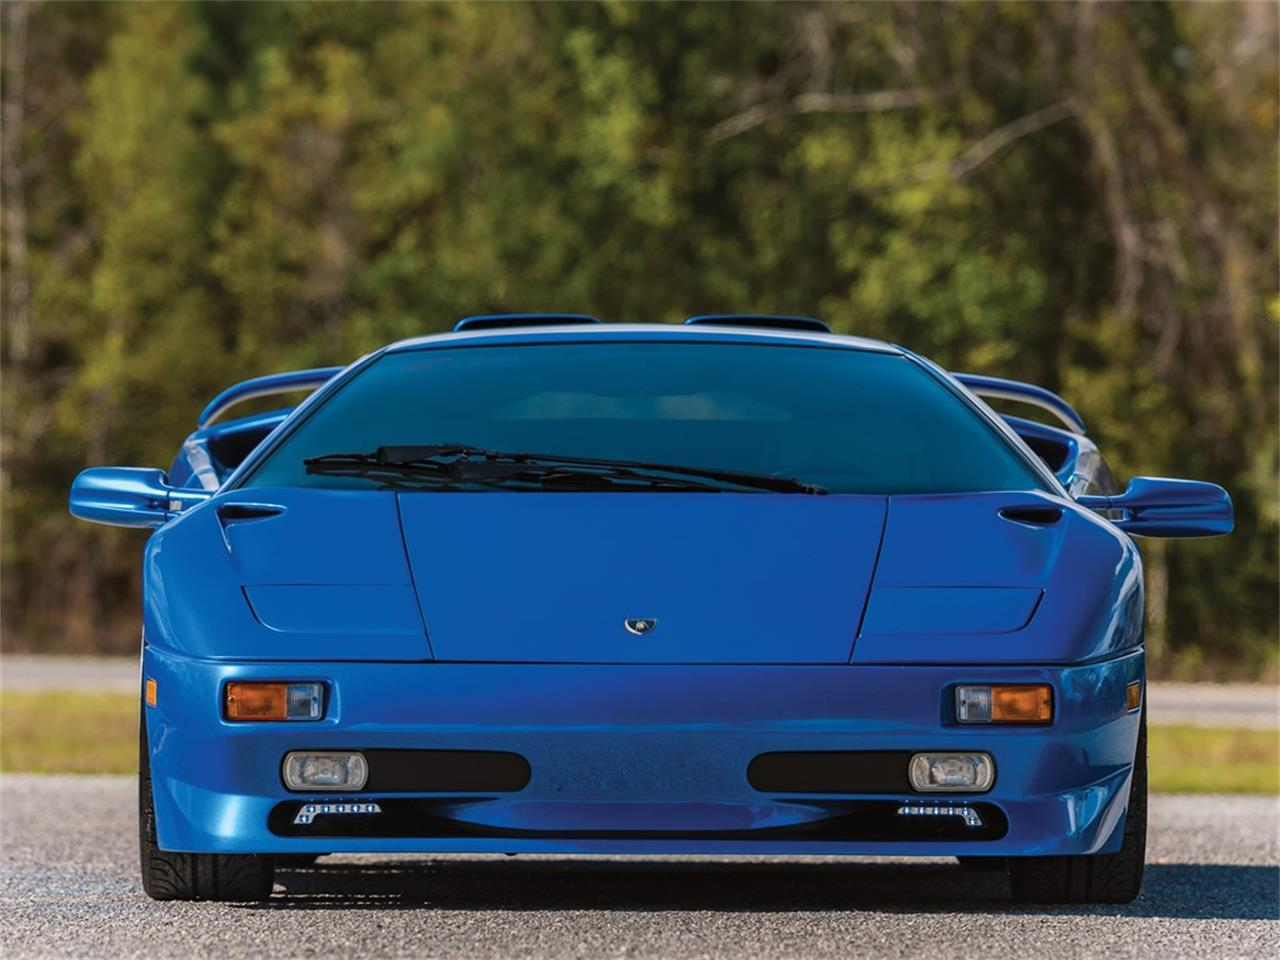 1998 Lamborghini Diablo for sale in Fort Lauderdale, FL – photo 9